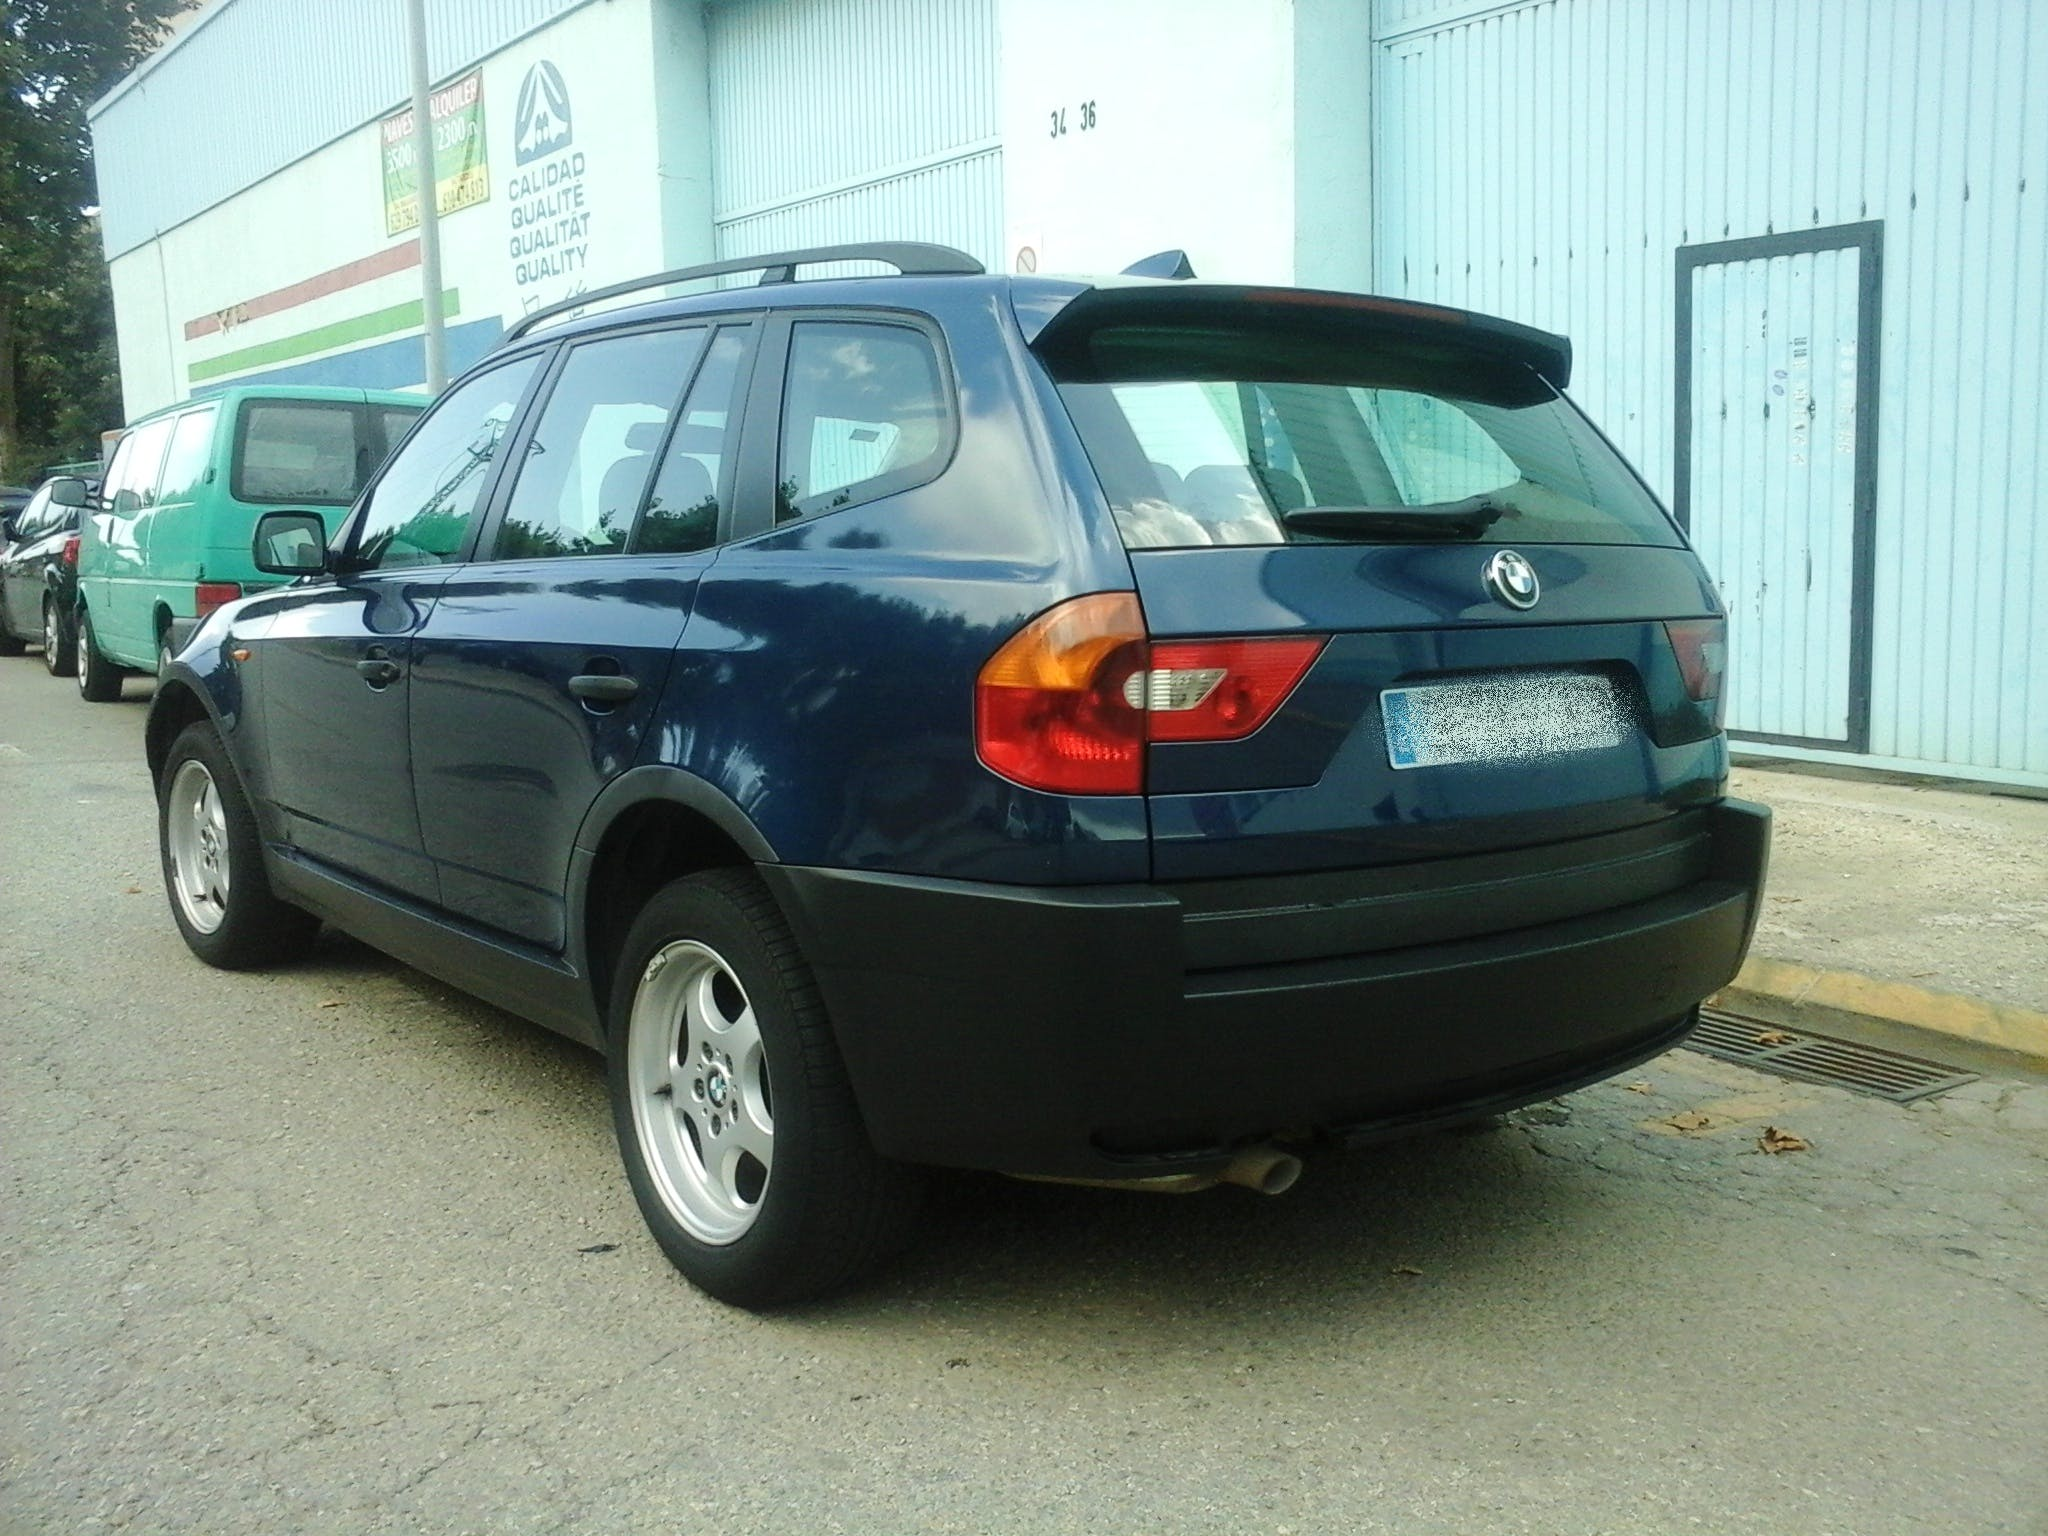 BMW X3 2.0D con Reproductor de CD